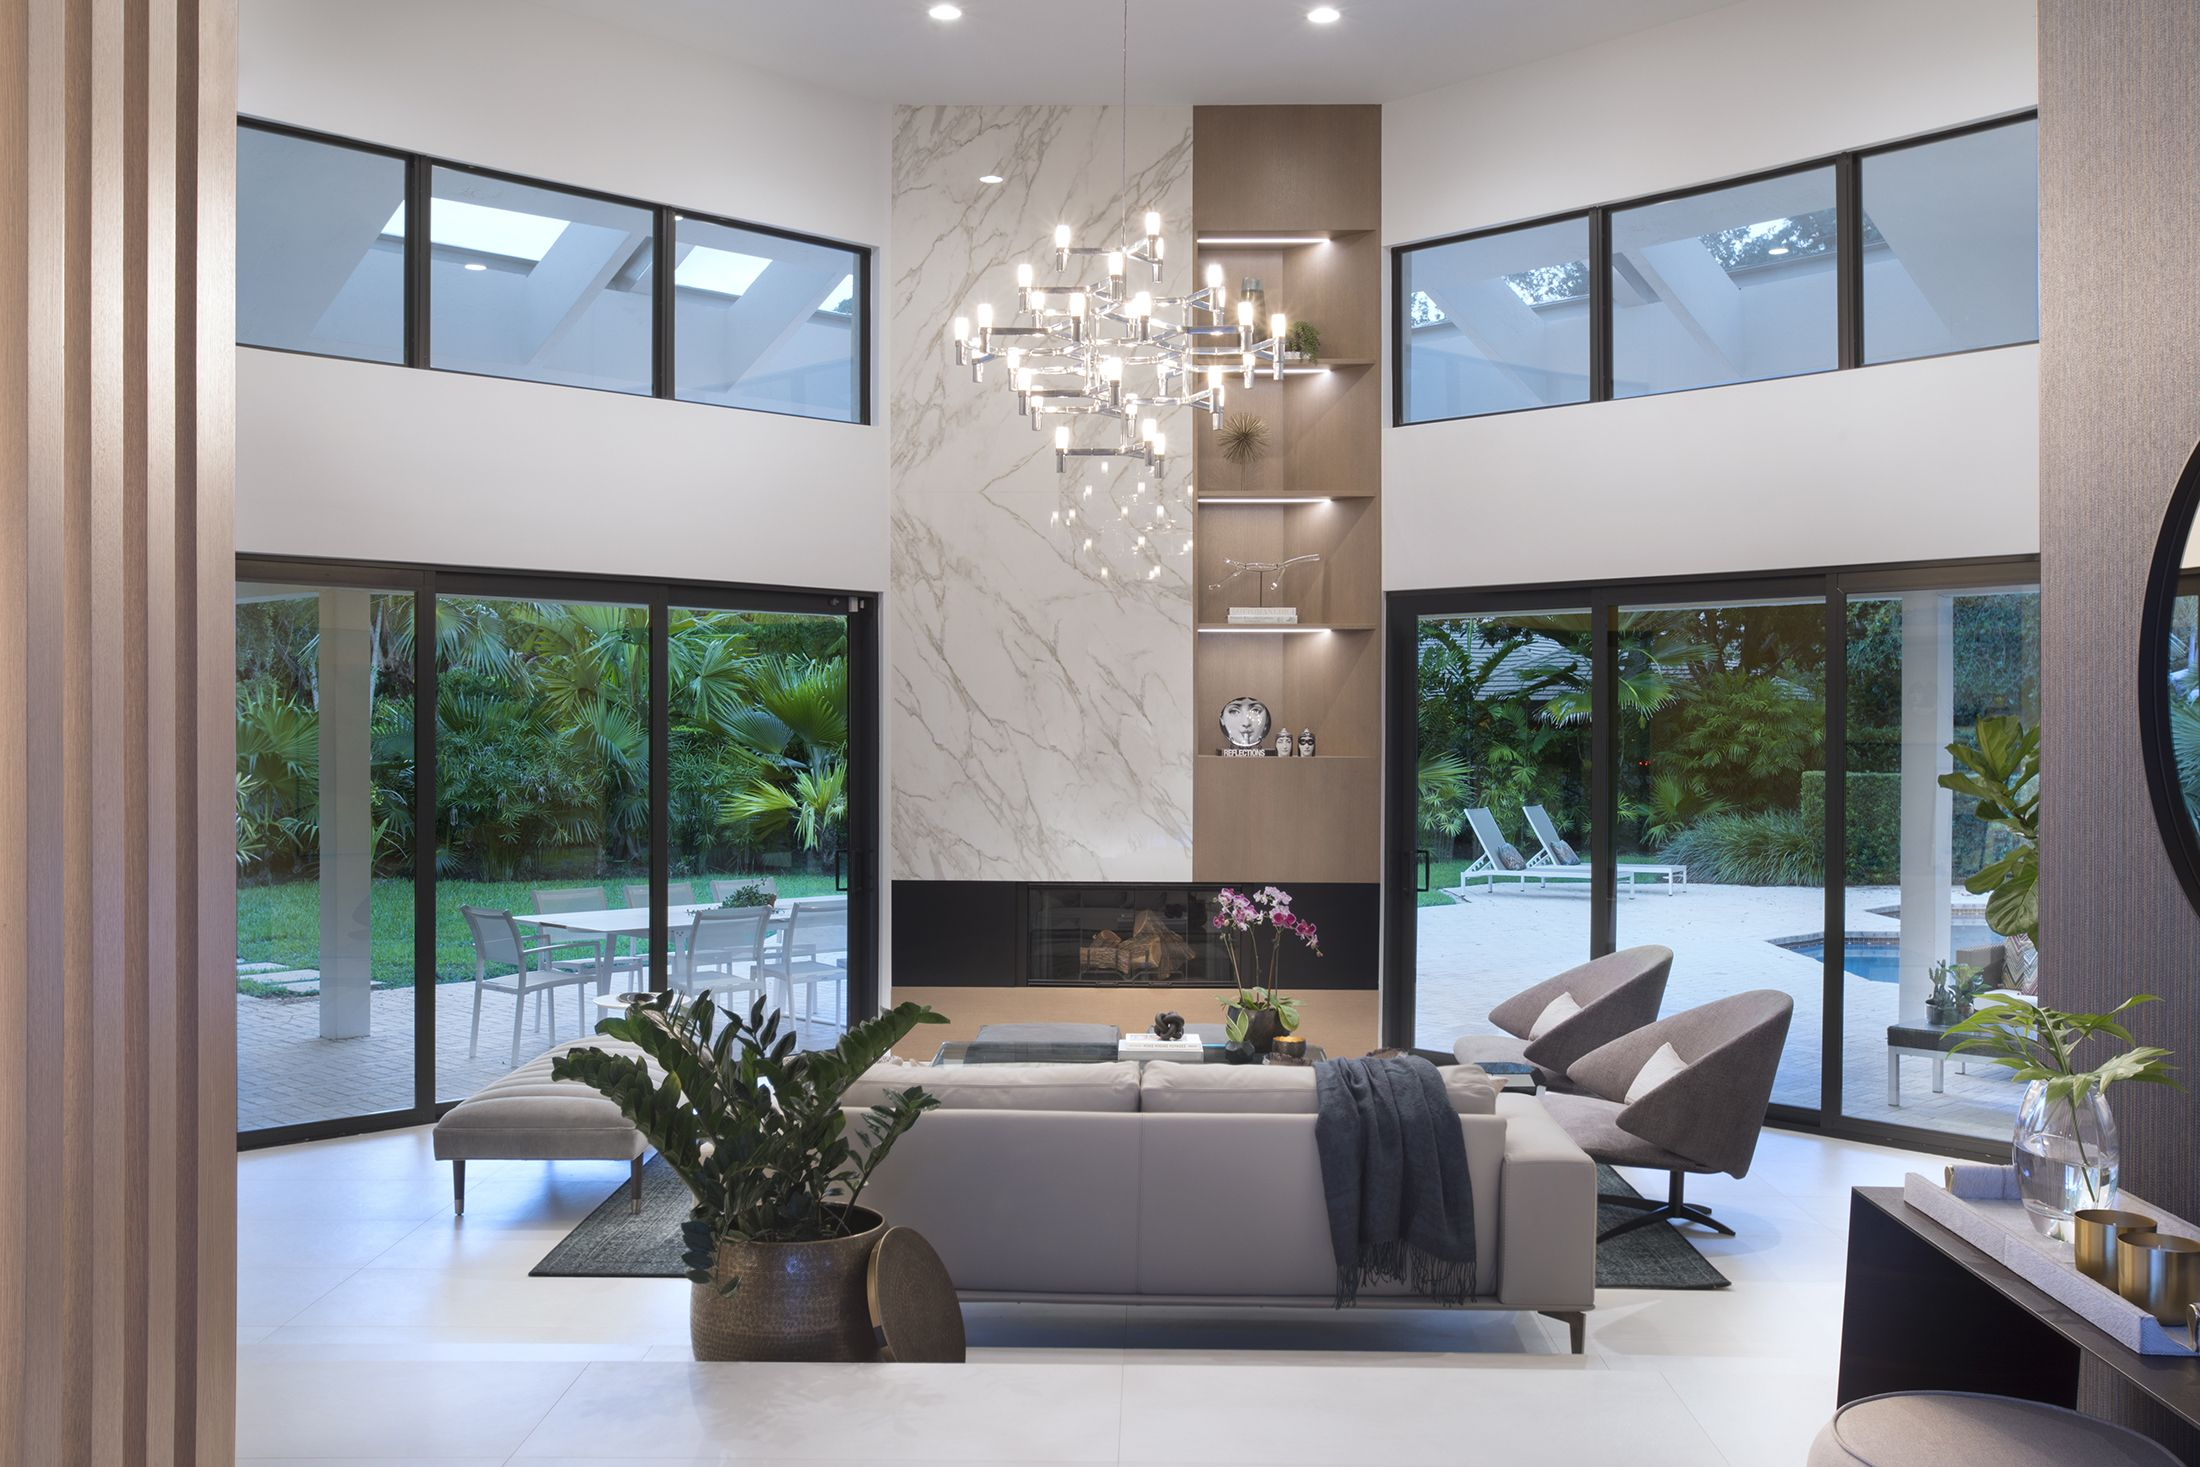 design architecture ken juan photography portfolio hayden with interior montoya miami